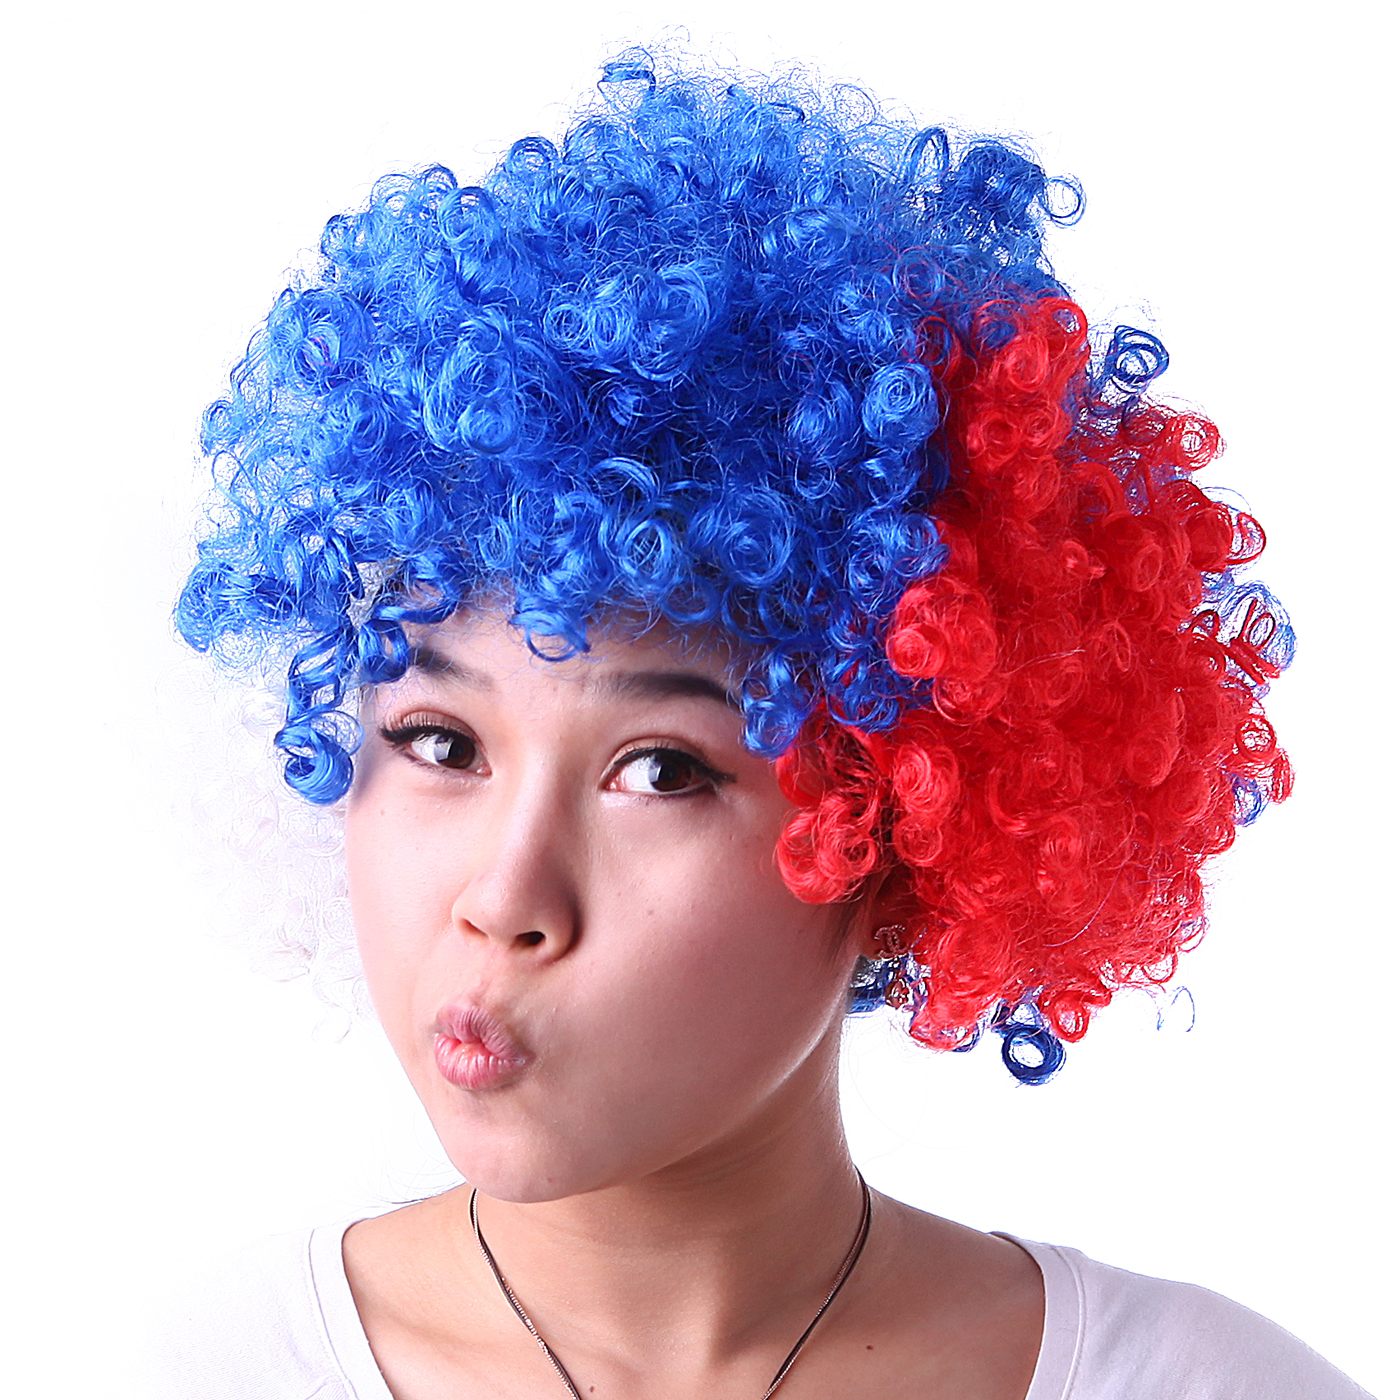 hde neon color afro curly clown